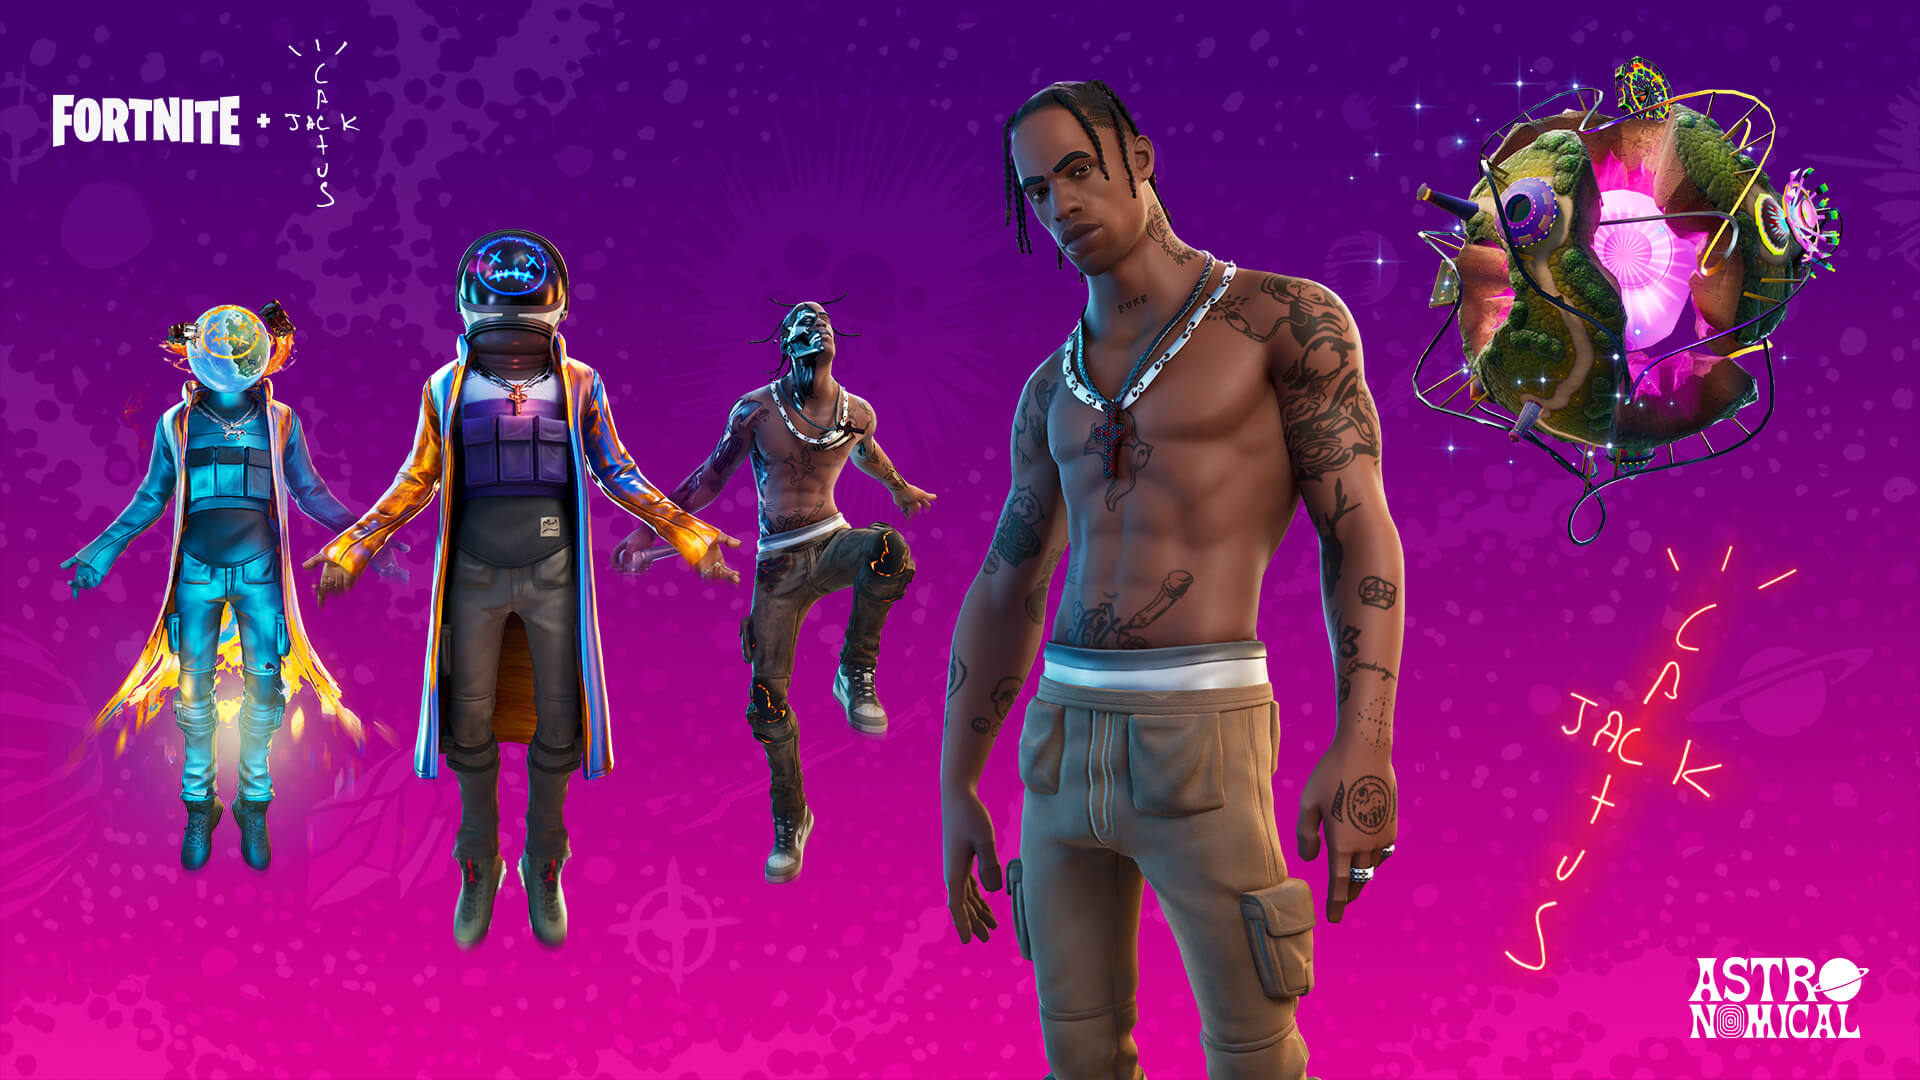 News & Blog About FortNite Save FortNite Battle Royal And The World